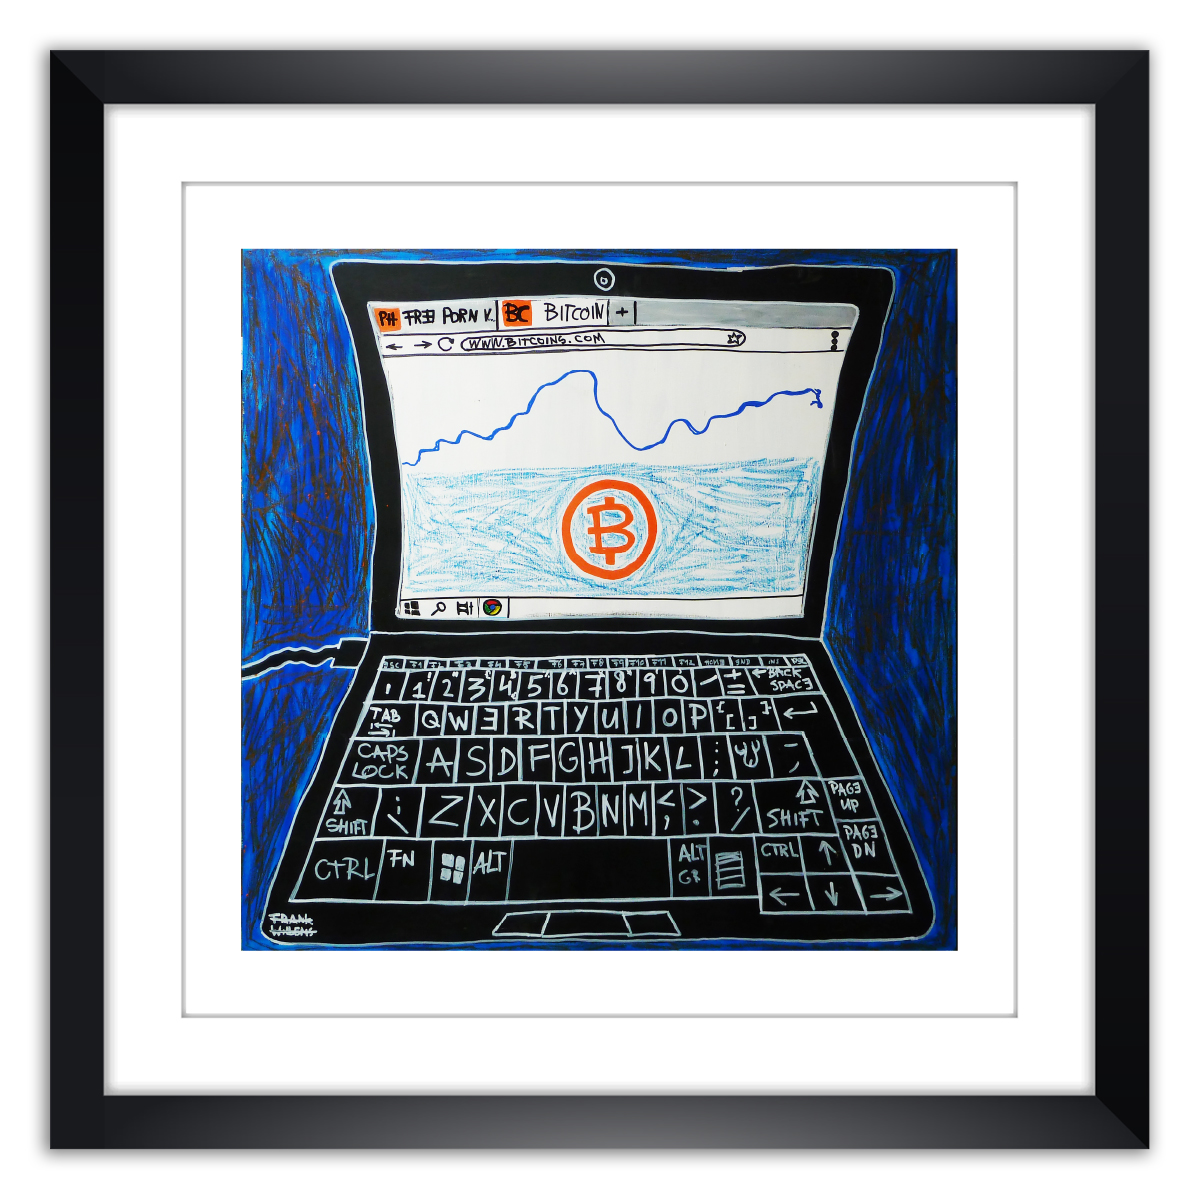 Limited prints - BITCOIN framed - Frank Willems